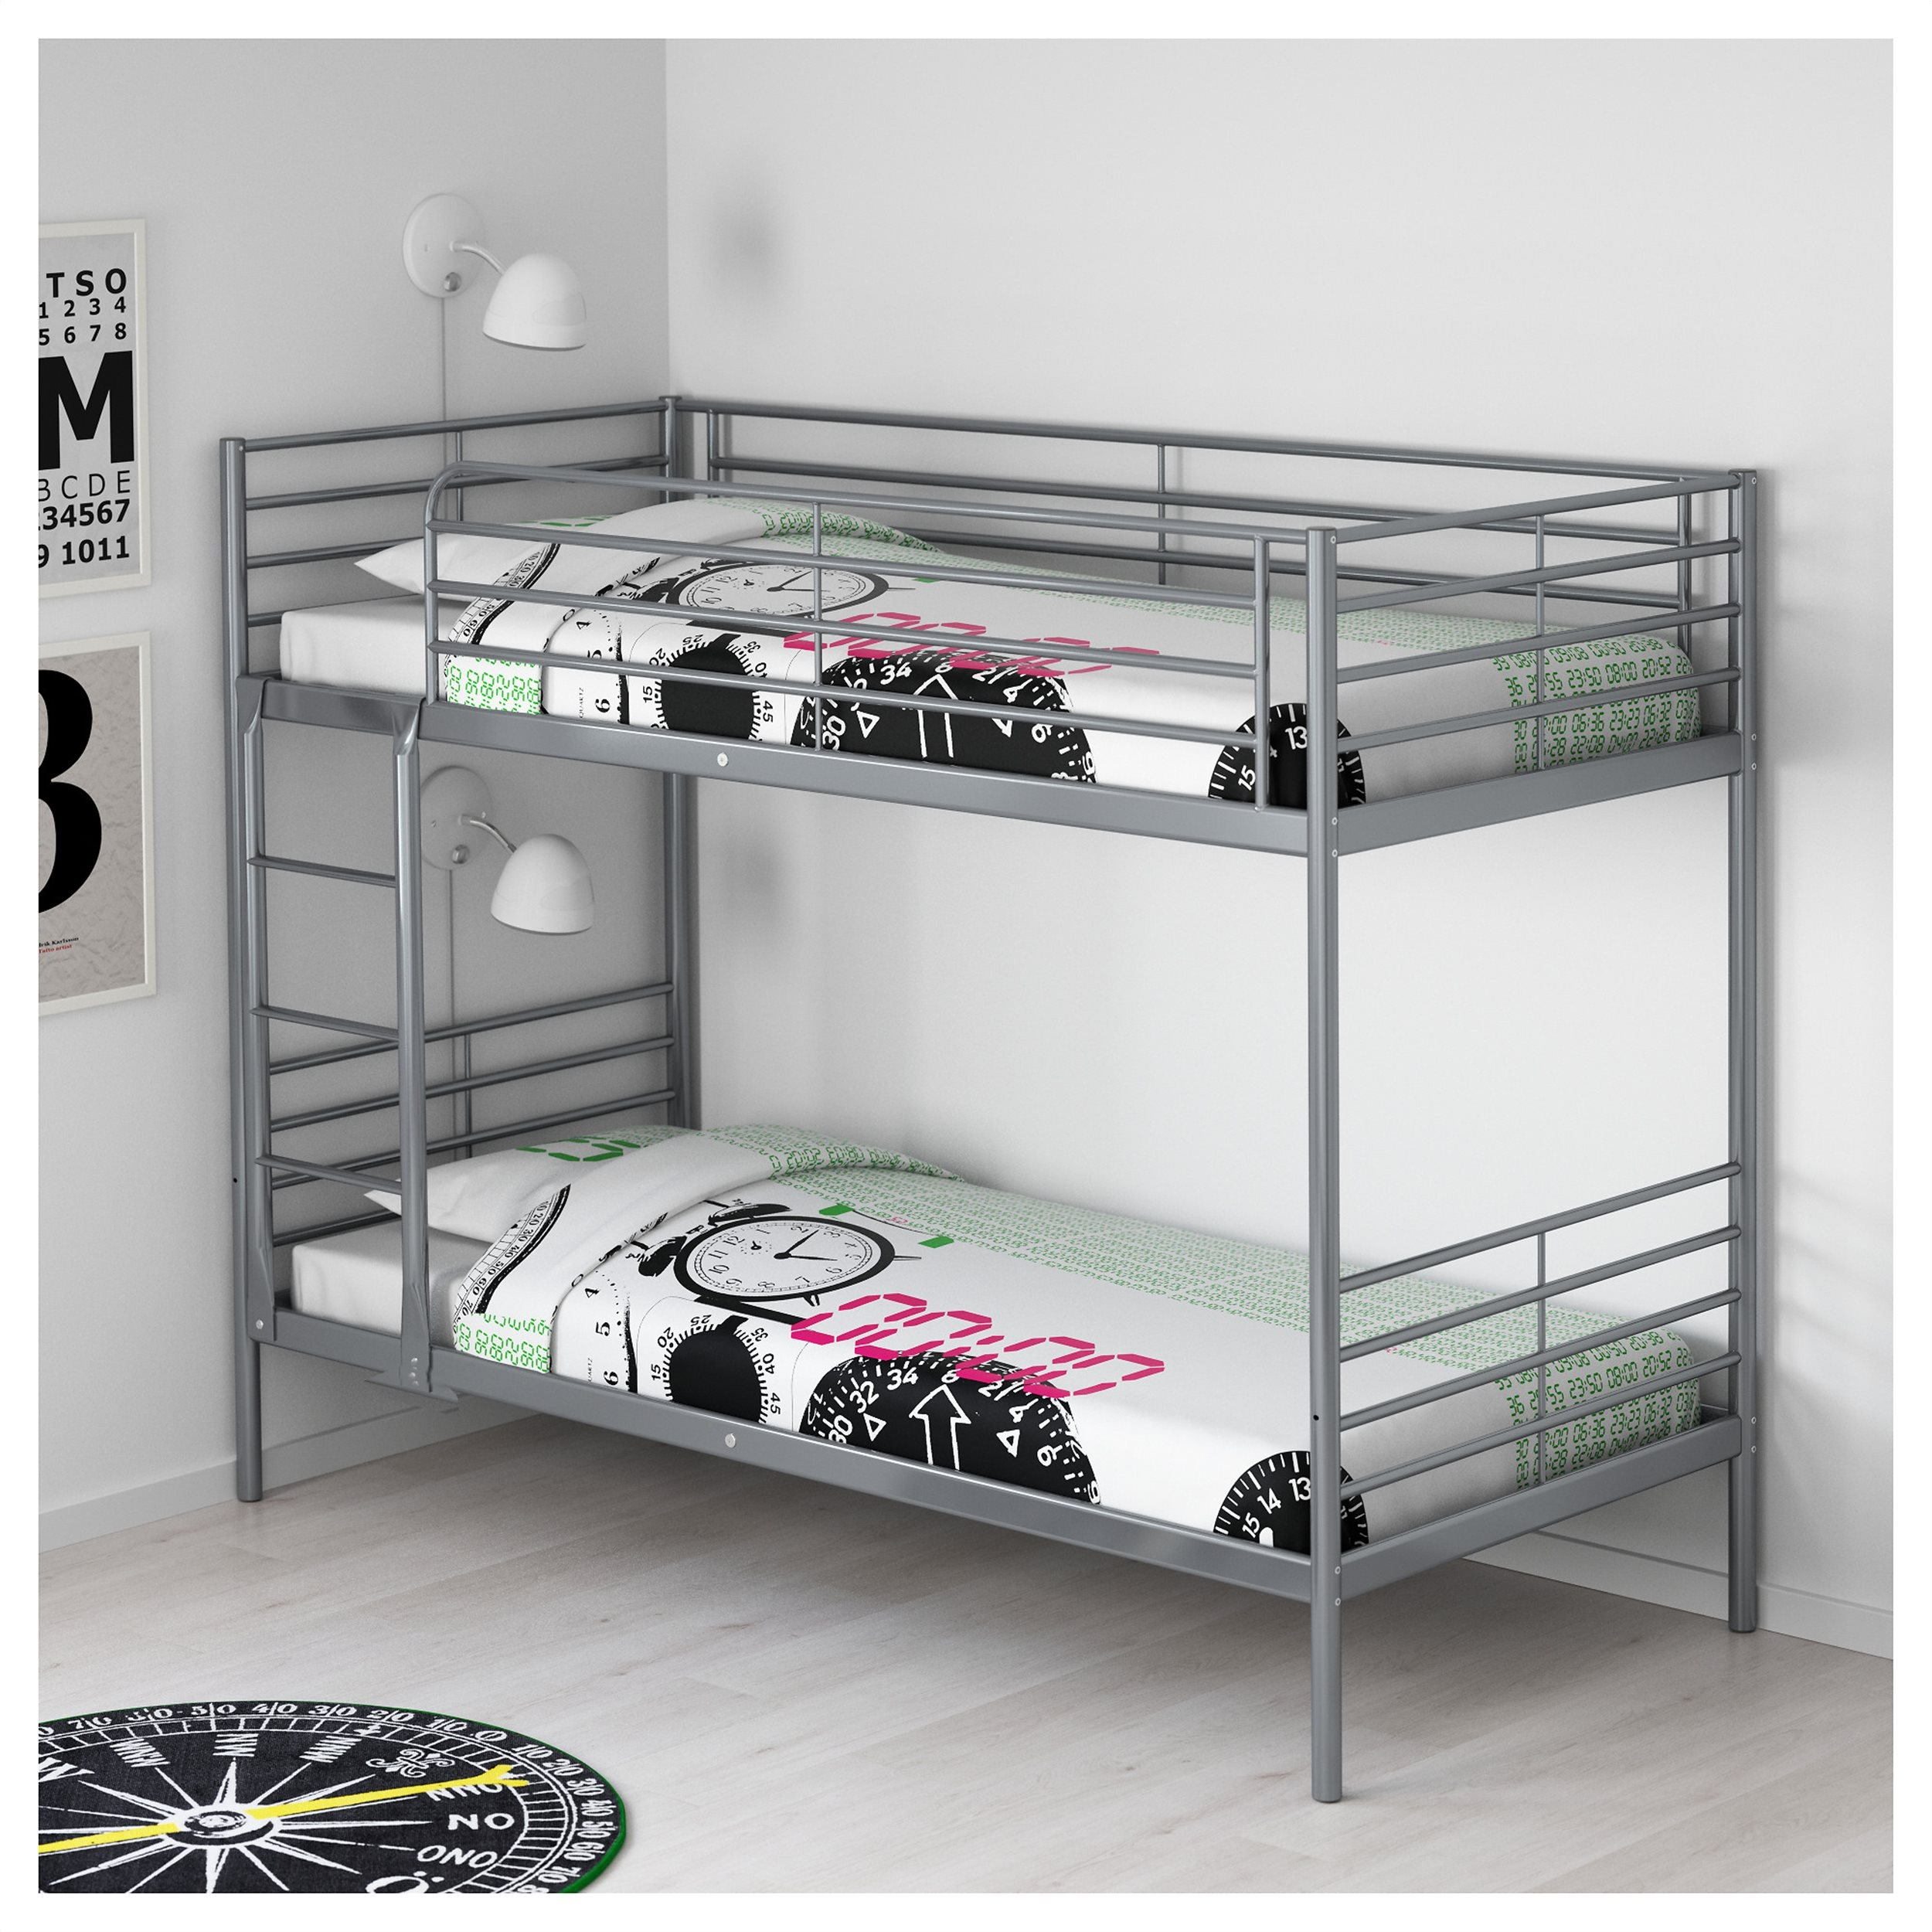 Ikea bunk beds visual hunt - Literas para adultos ...